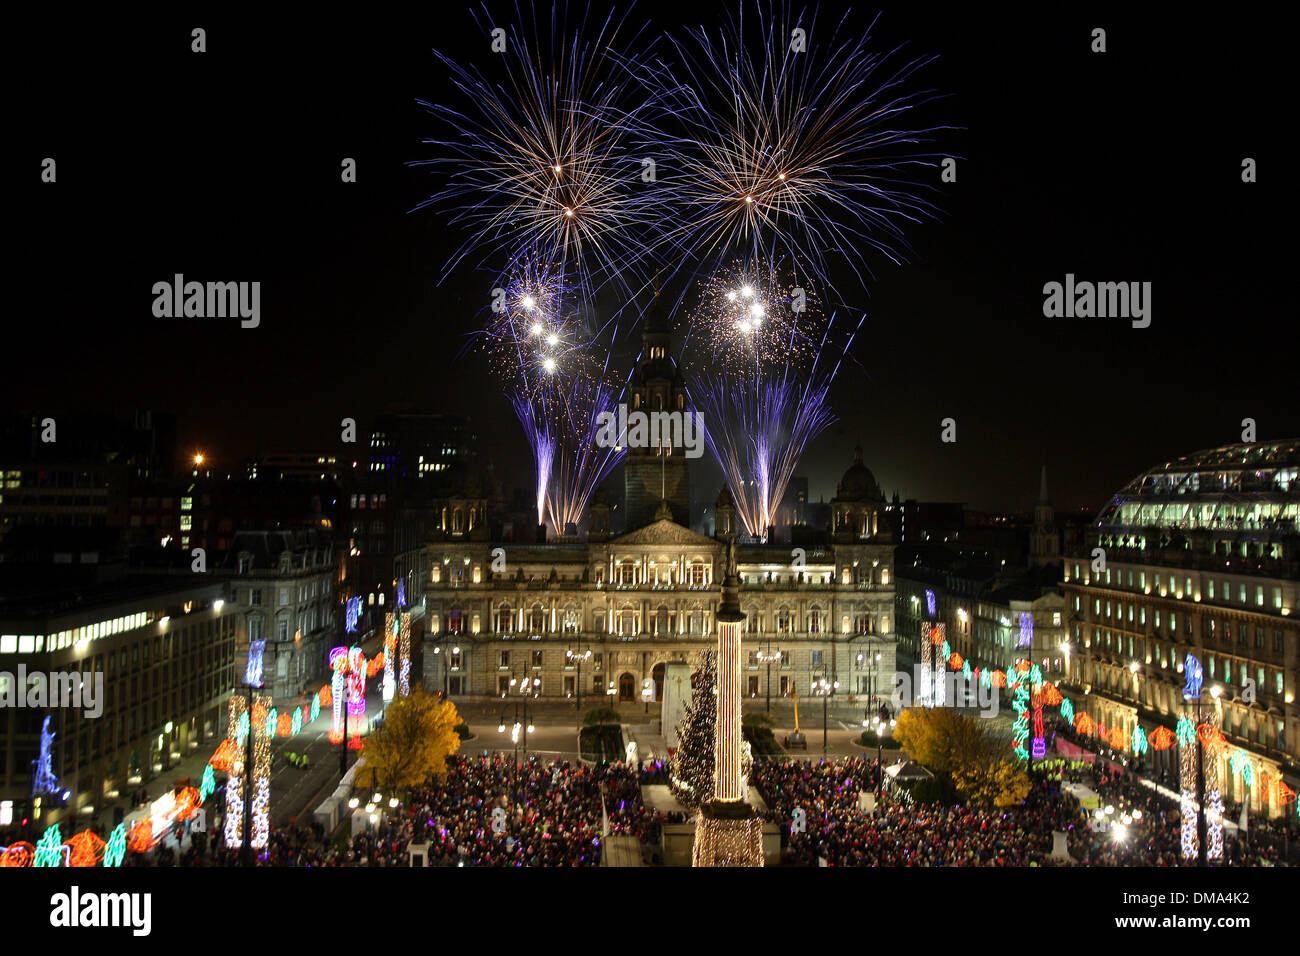 Fireworks over The People's Palace and Winter Gardens in Glasgow Green, Scotland - Stock Image